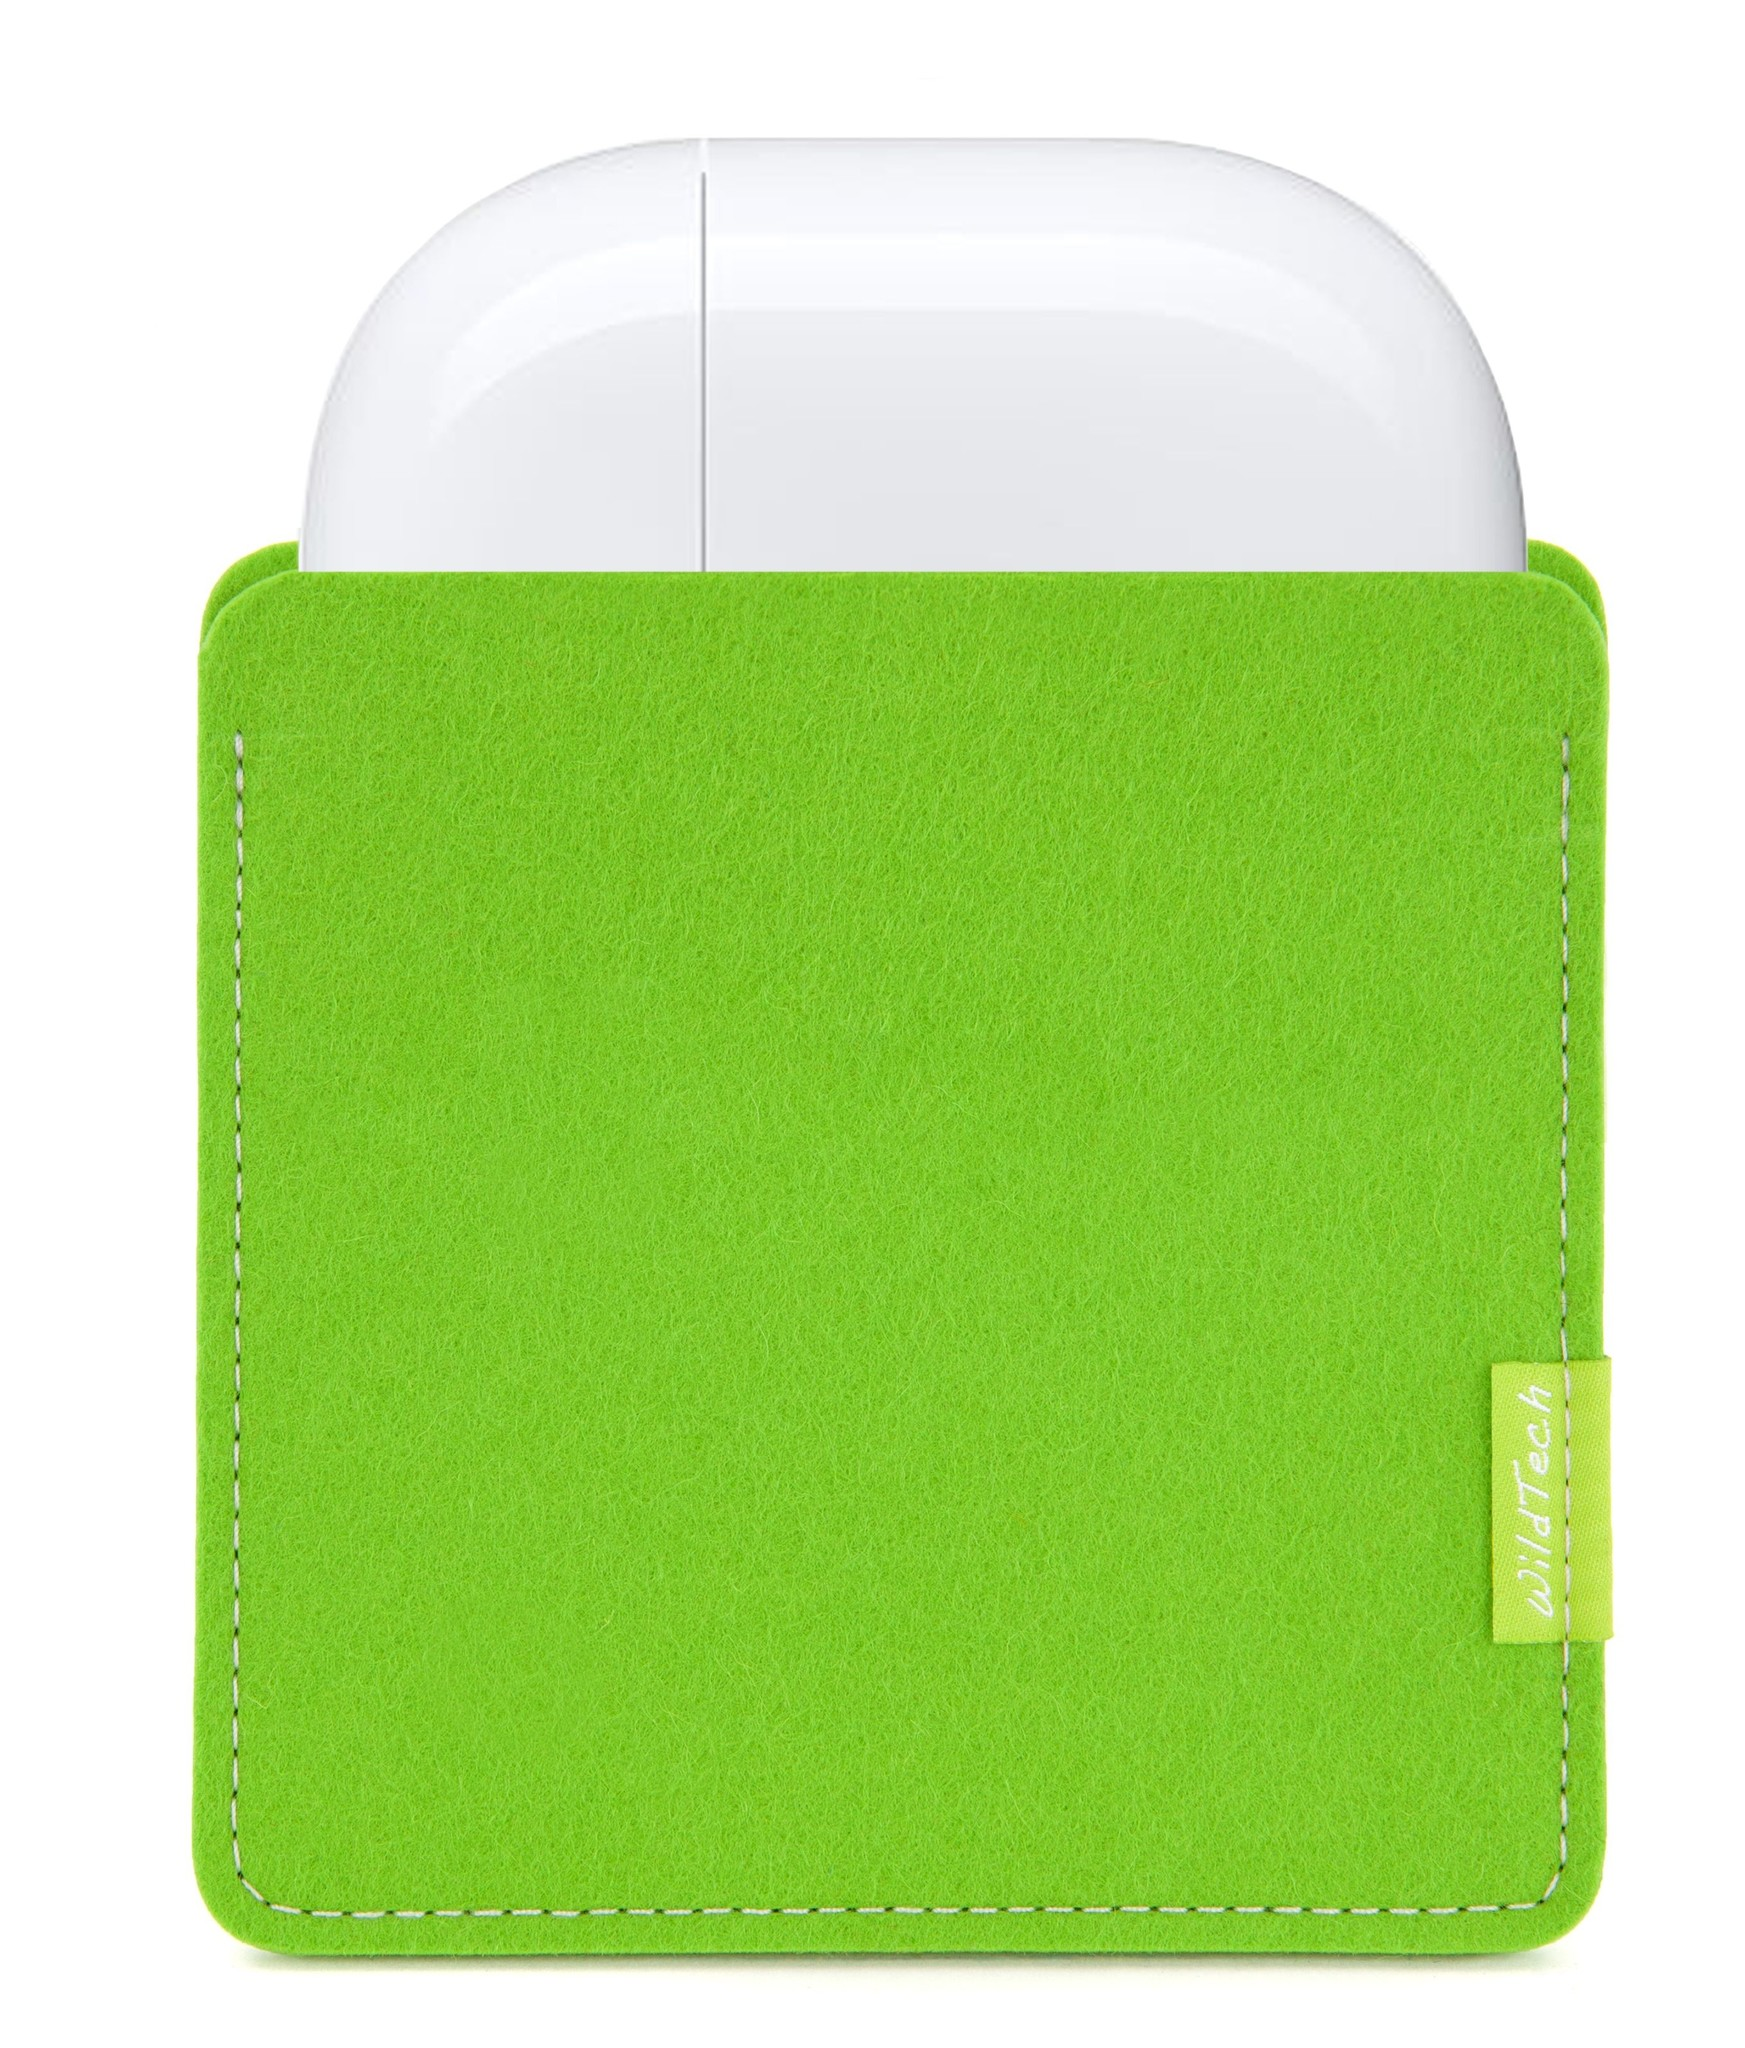 AirPods Sleeve Bright-Green-1